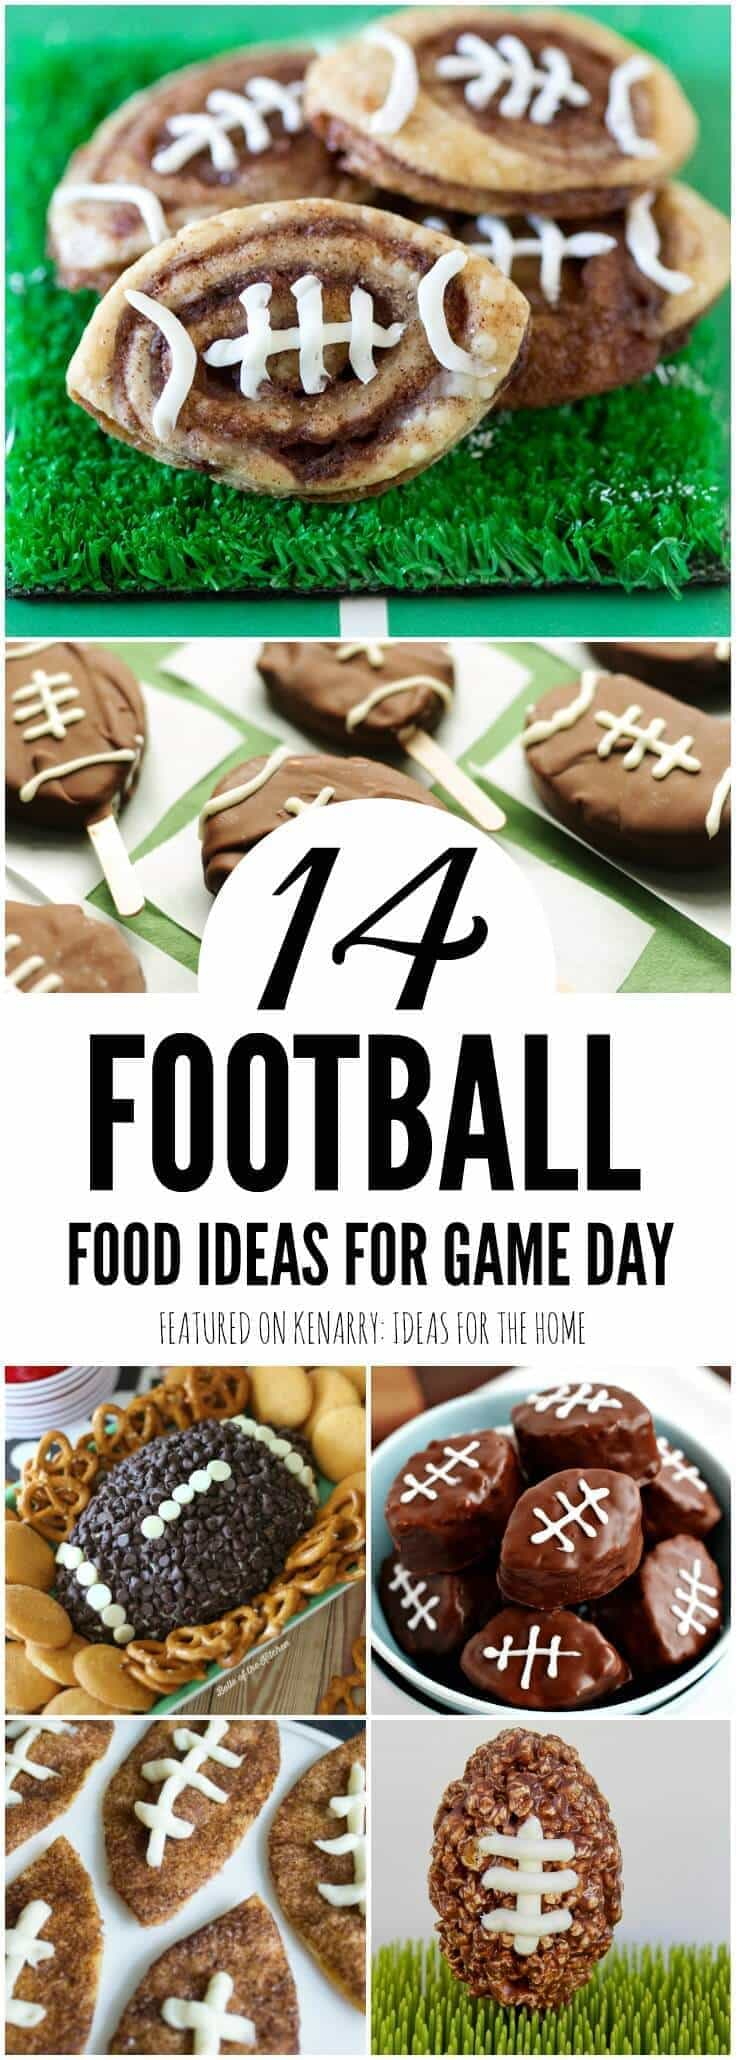 I love all these football shaped food ideas! I can't wait to try to some of these fun recipes for game day, tailgating - and even the Super Bowl!